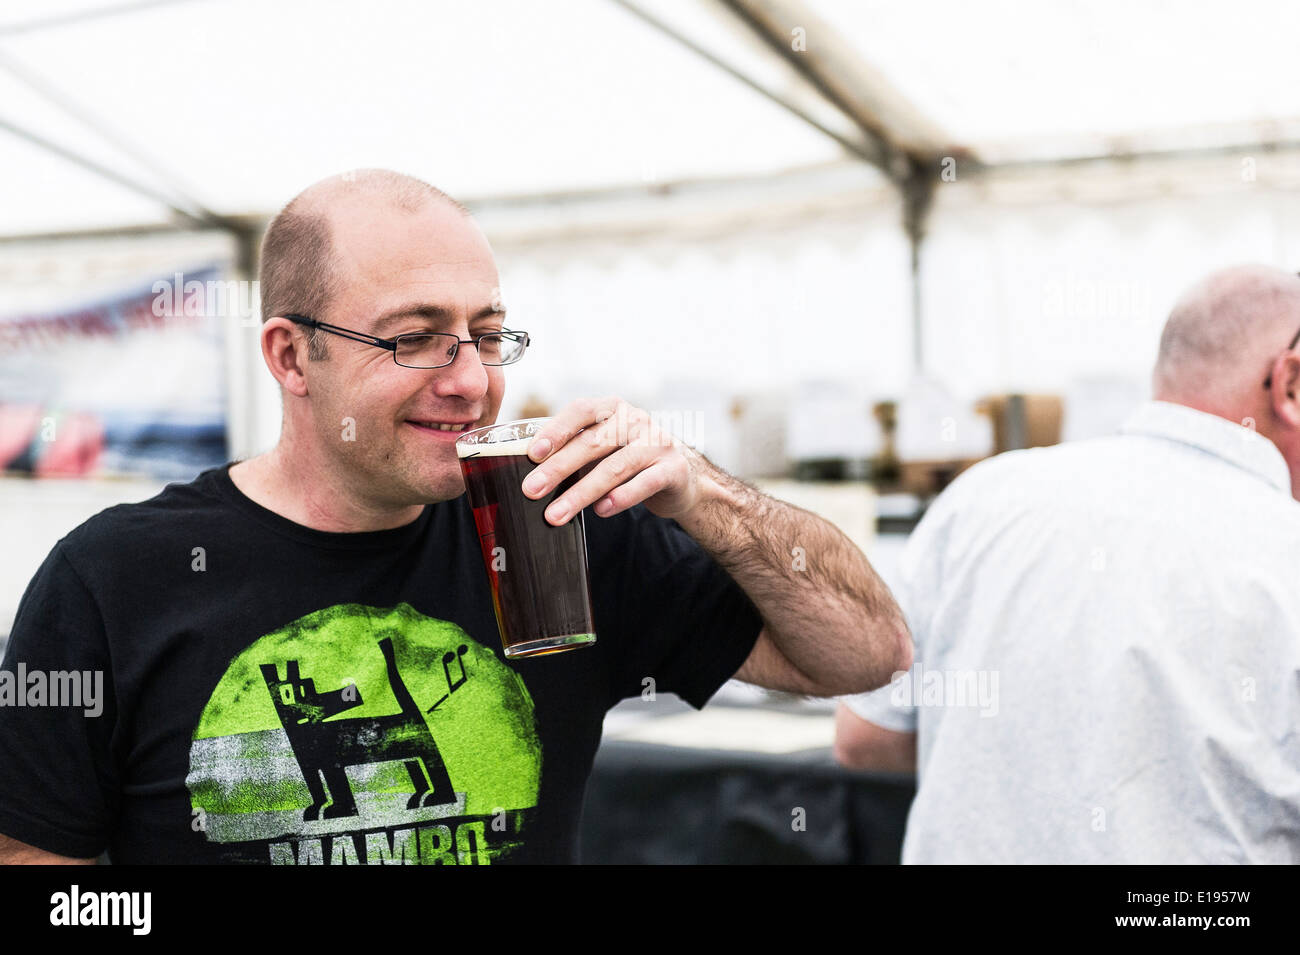 A happy customer tasting his first pint of real ale of the day at the Hoop Beer Festival. - Stock Image